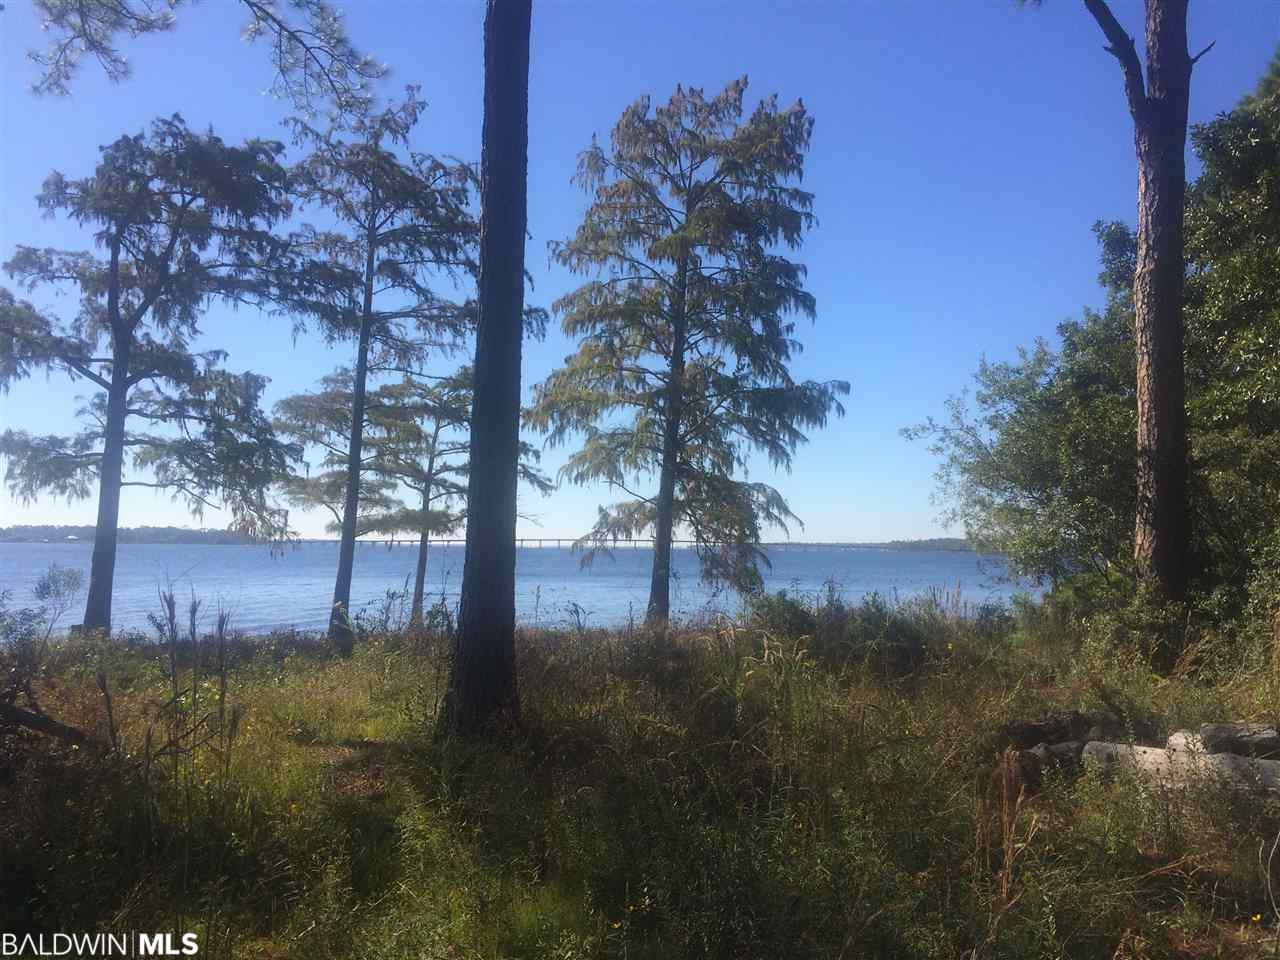 lot 36 Boykin Blvd, Lillian, AL 36549